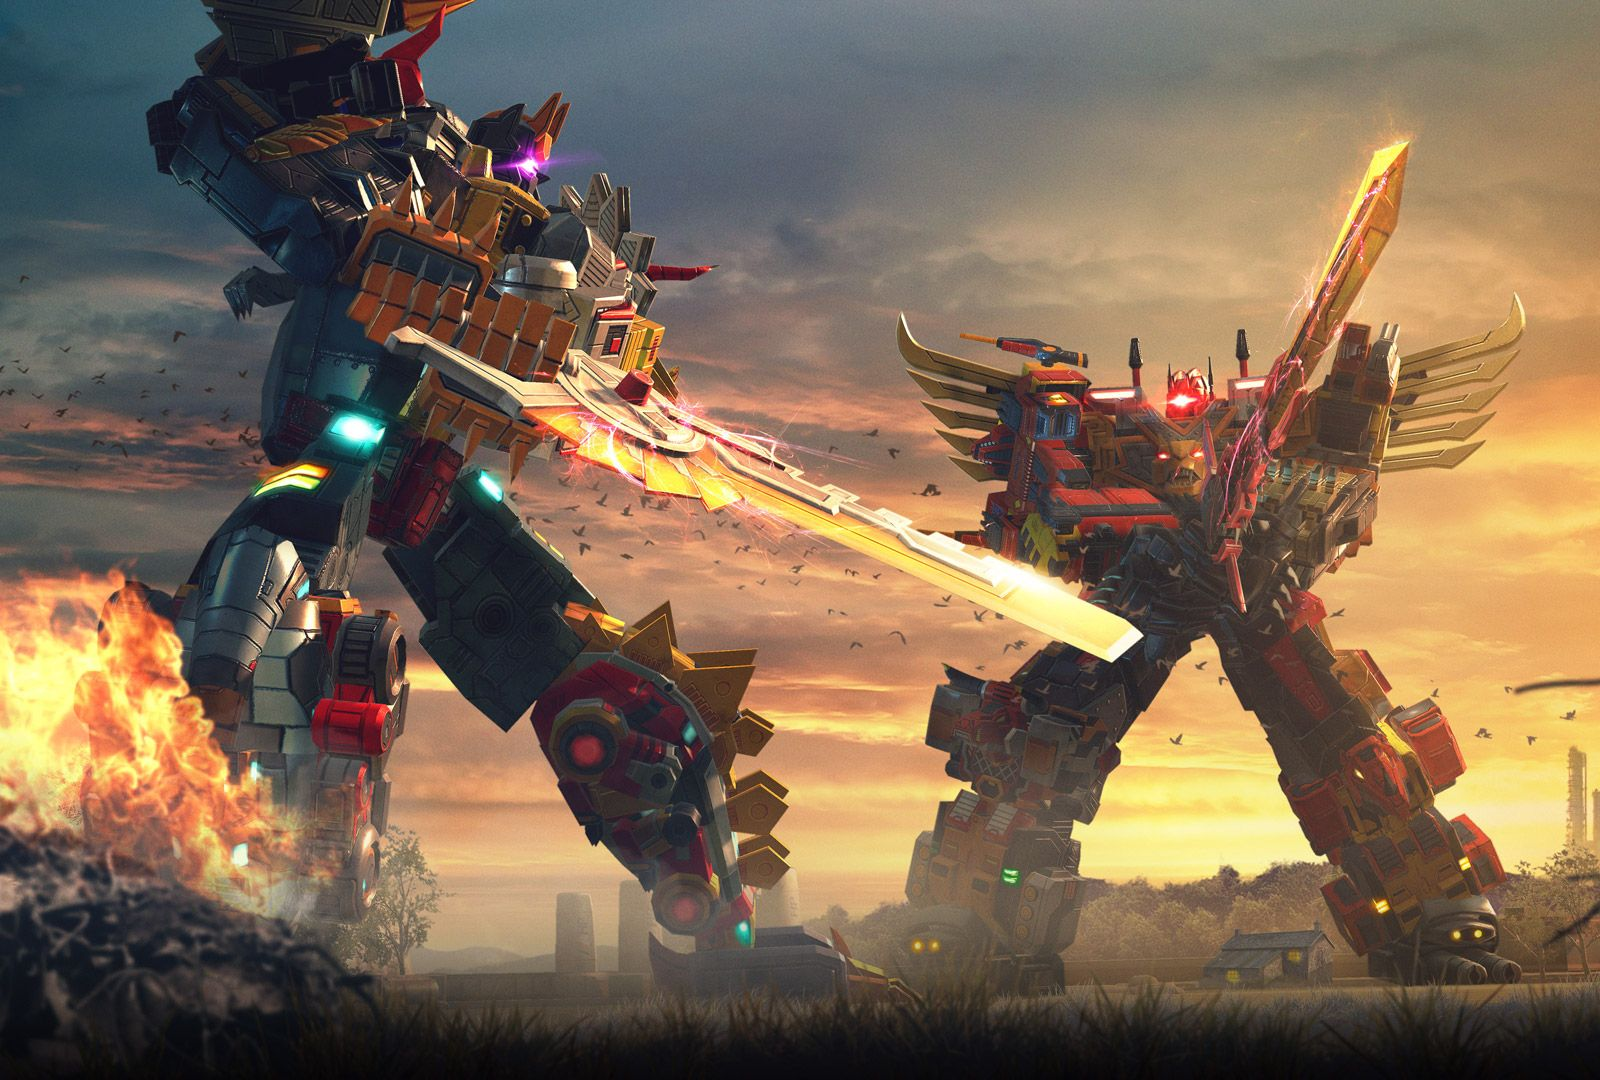 Transformers Earth Wars Developer Diaries featuring Volcanicus and Predaking   Transformers artwork, Transformers, Transformers art